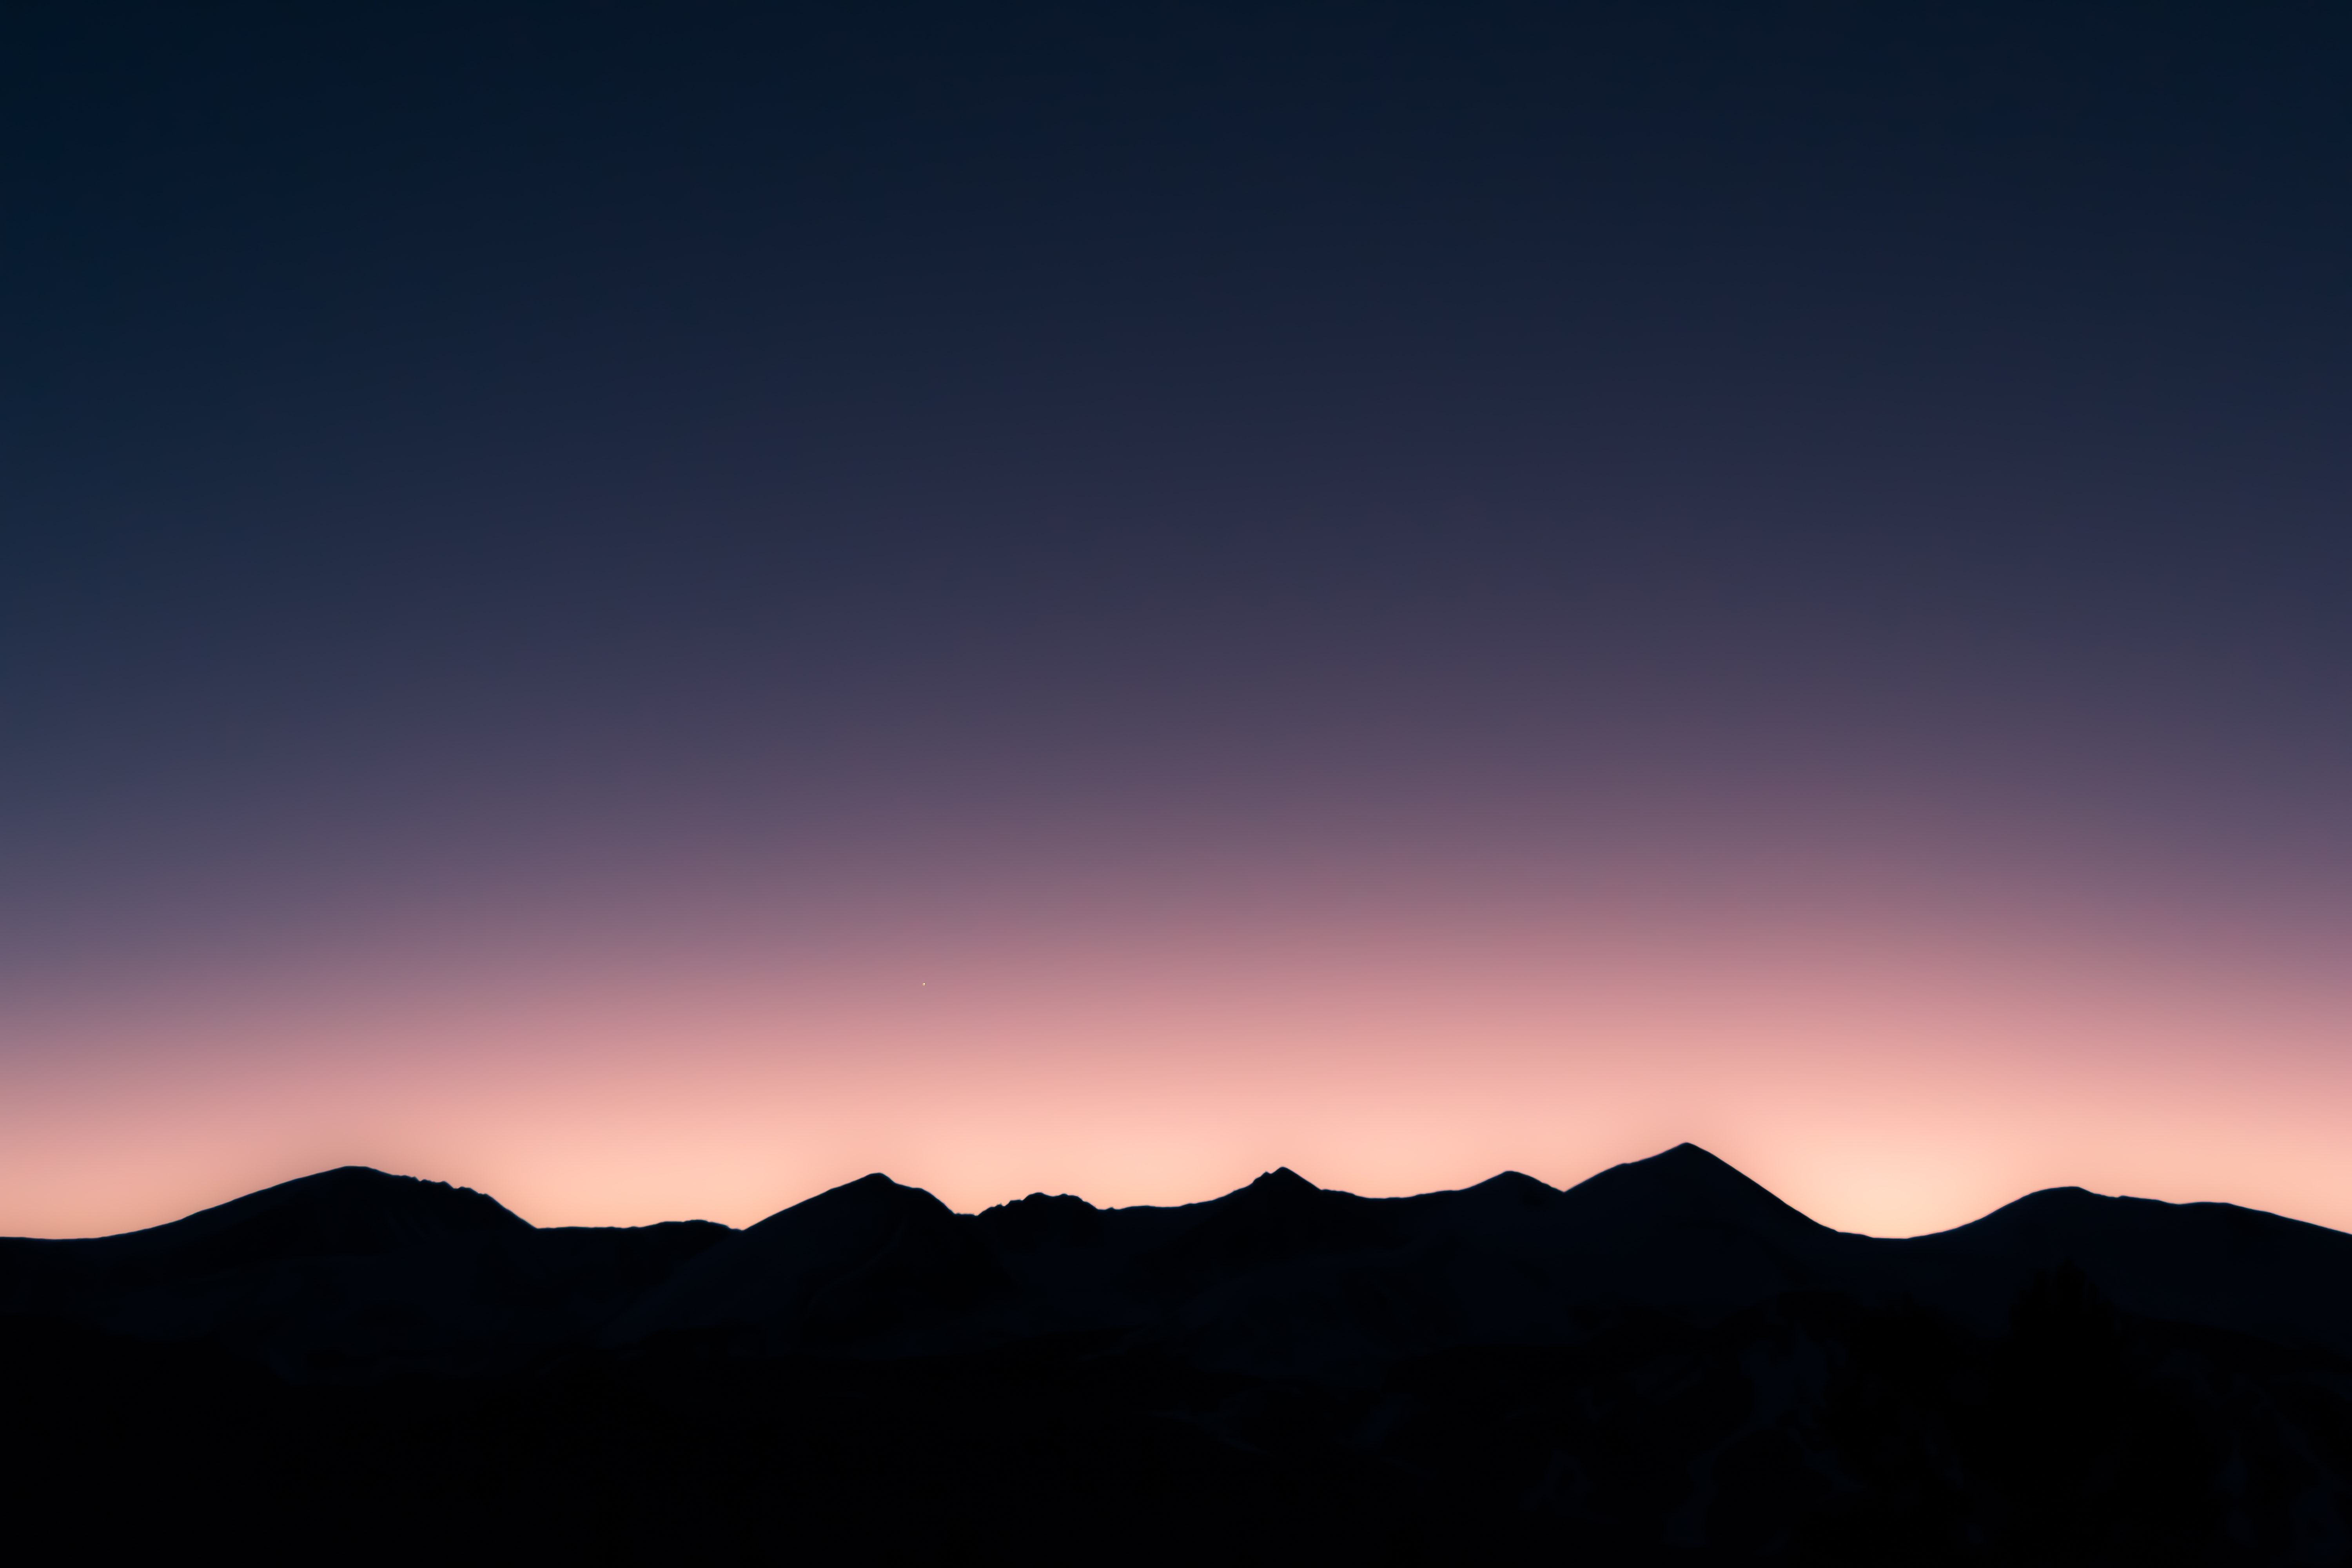 Dark silhouettes of lofty mountaintops under a purple evening sky